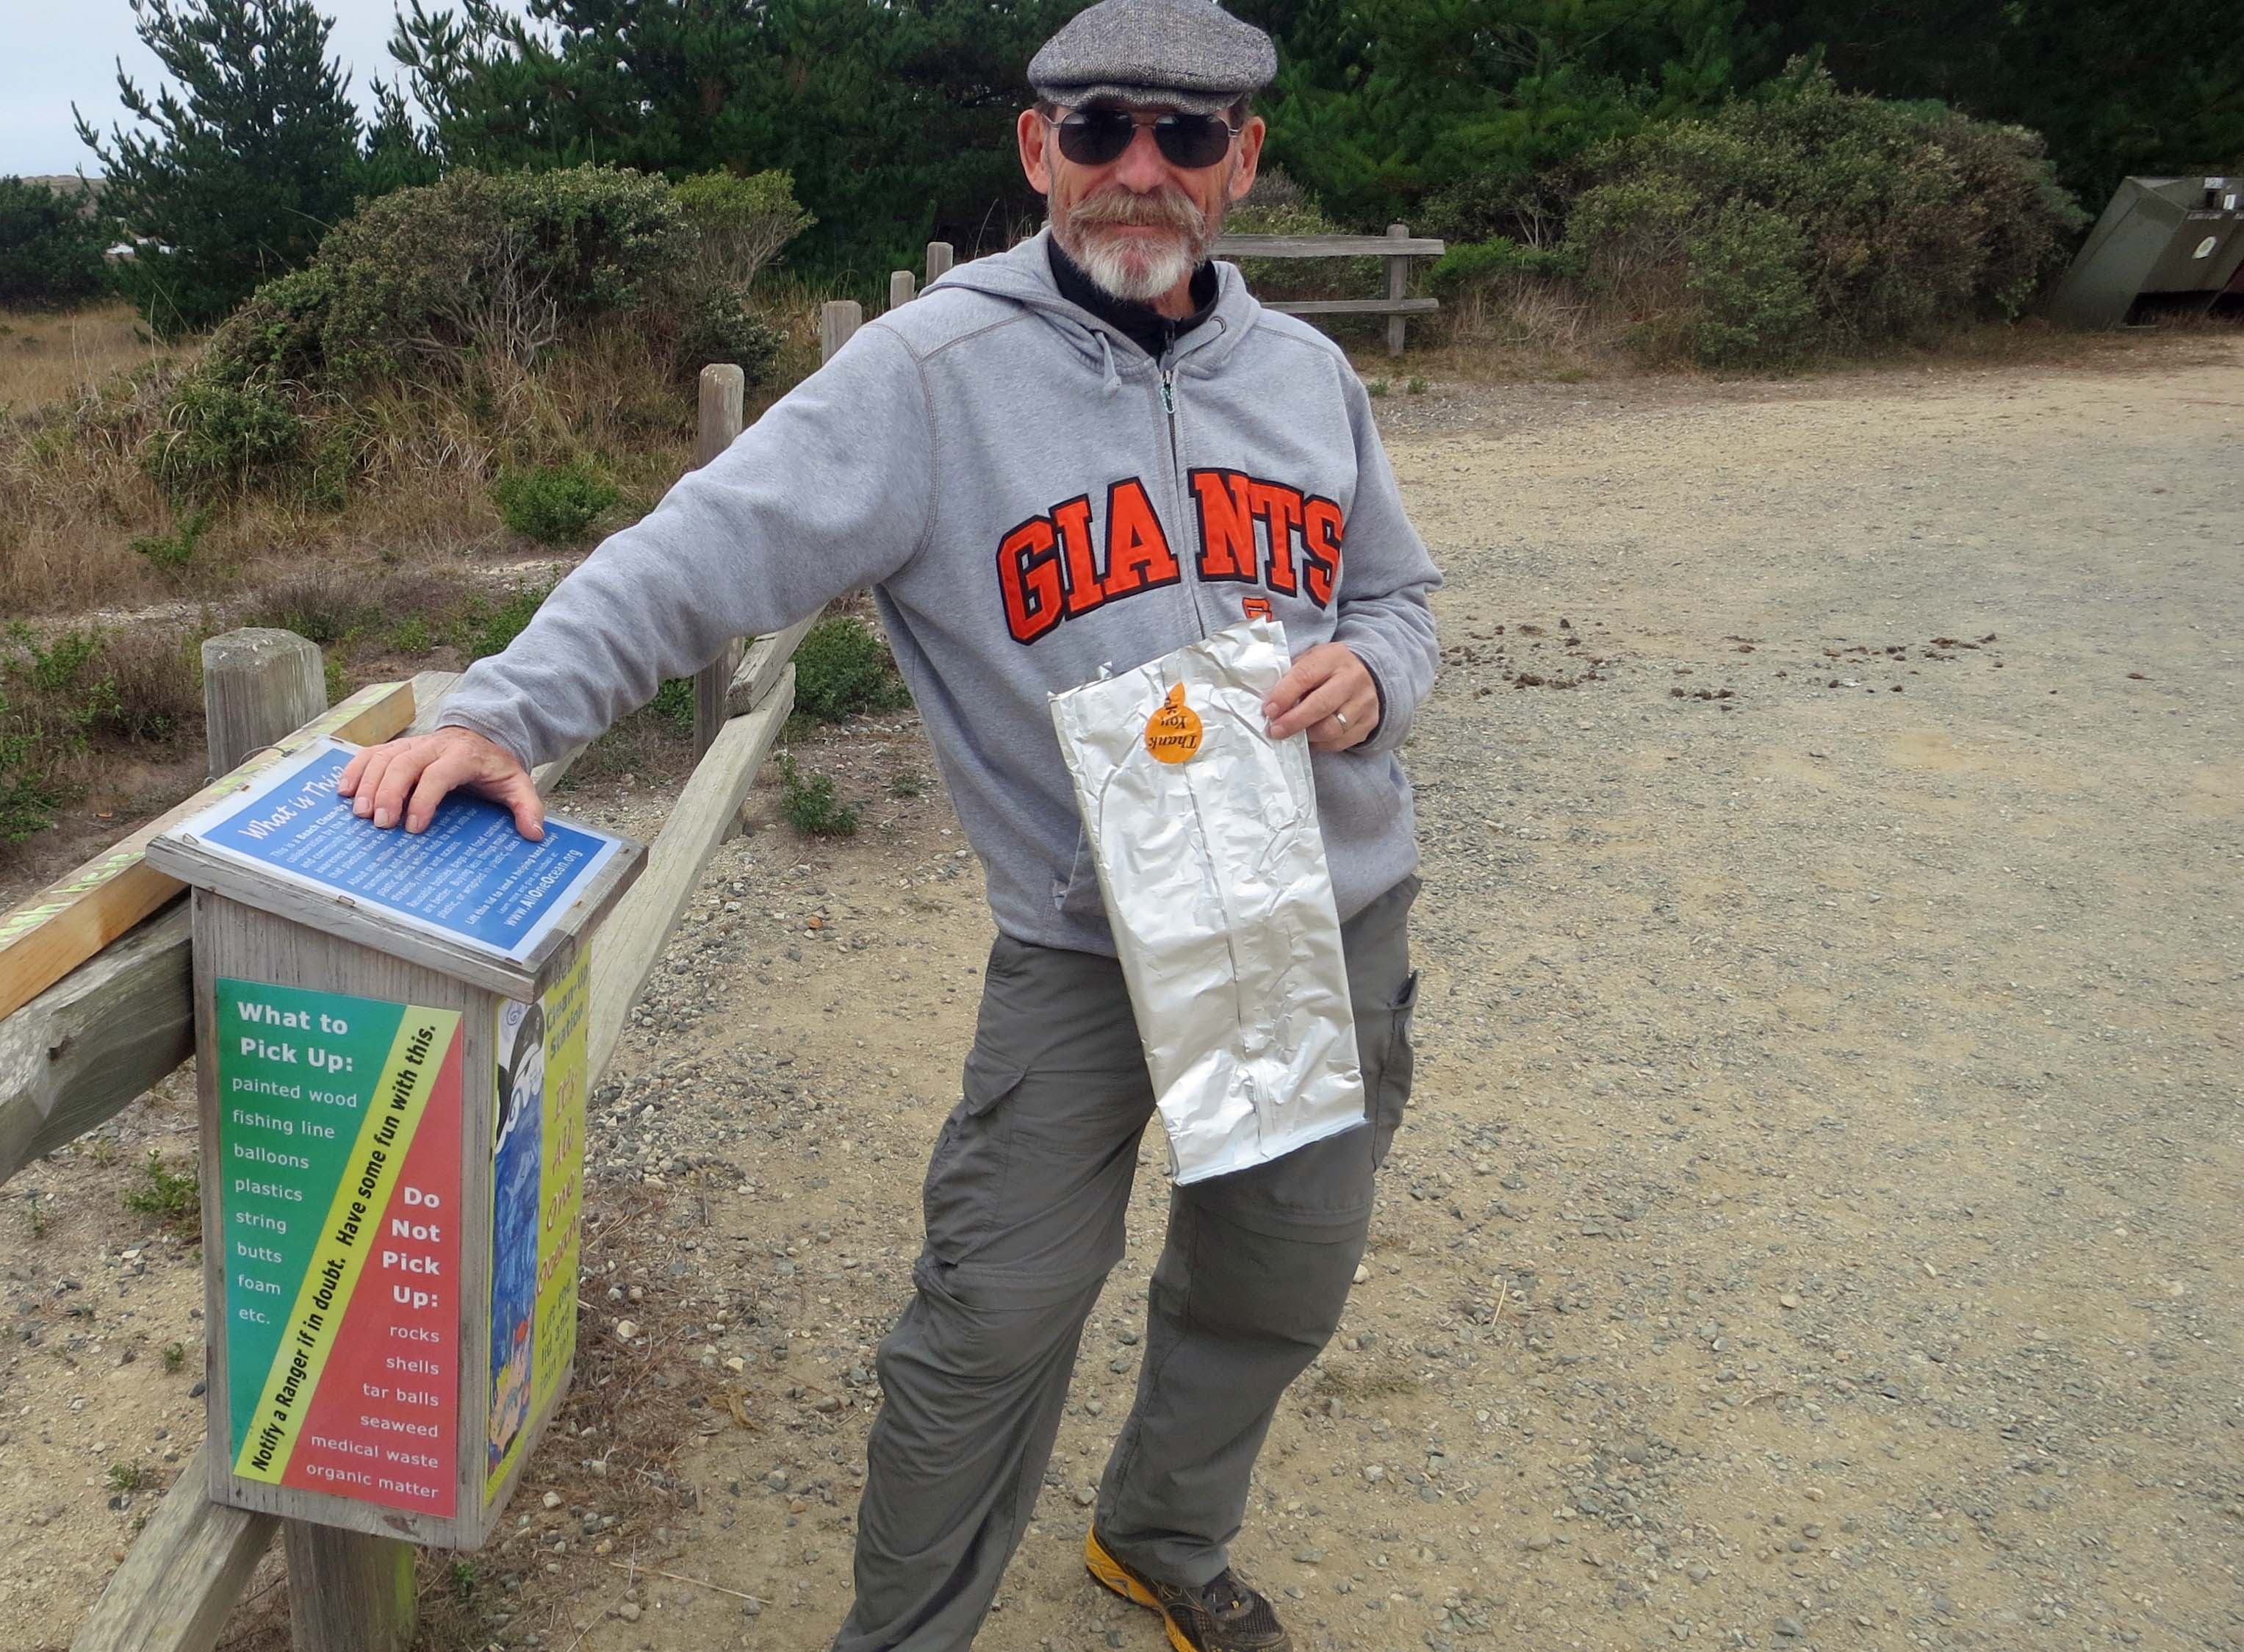 Bags provided for picking up trash on Limantour Beach at Pt. Reyes National Seashore. Photo by Curtis Mekemson